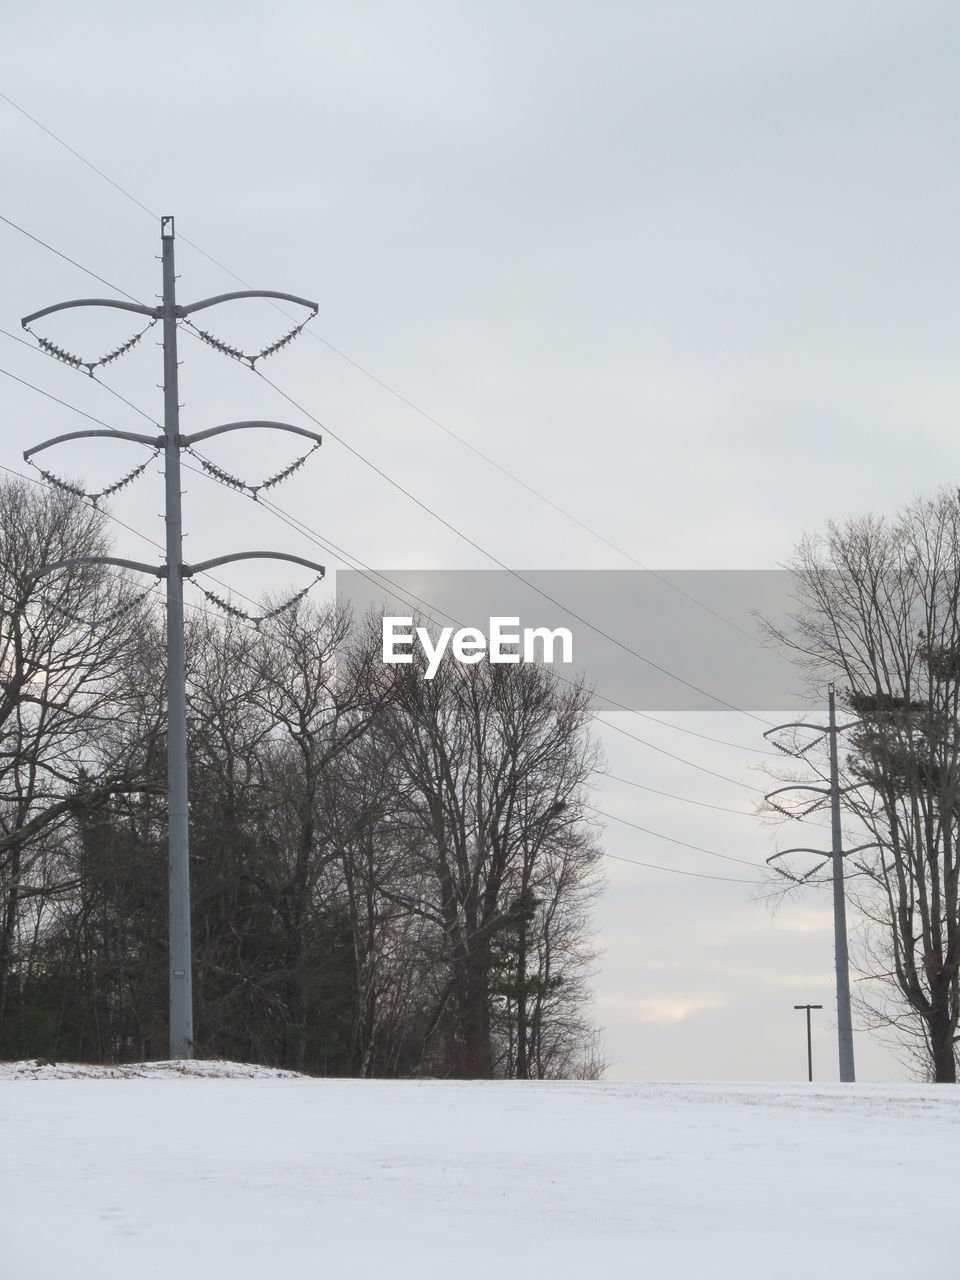 snow, winter, cold temperature, tree, sky, cable, bare tree, electricity pylon, electricity, nature, plant, technology, power line, power supply, field, beauty in nature, no people, connection, scenics - nature, outdoors, snowing